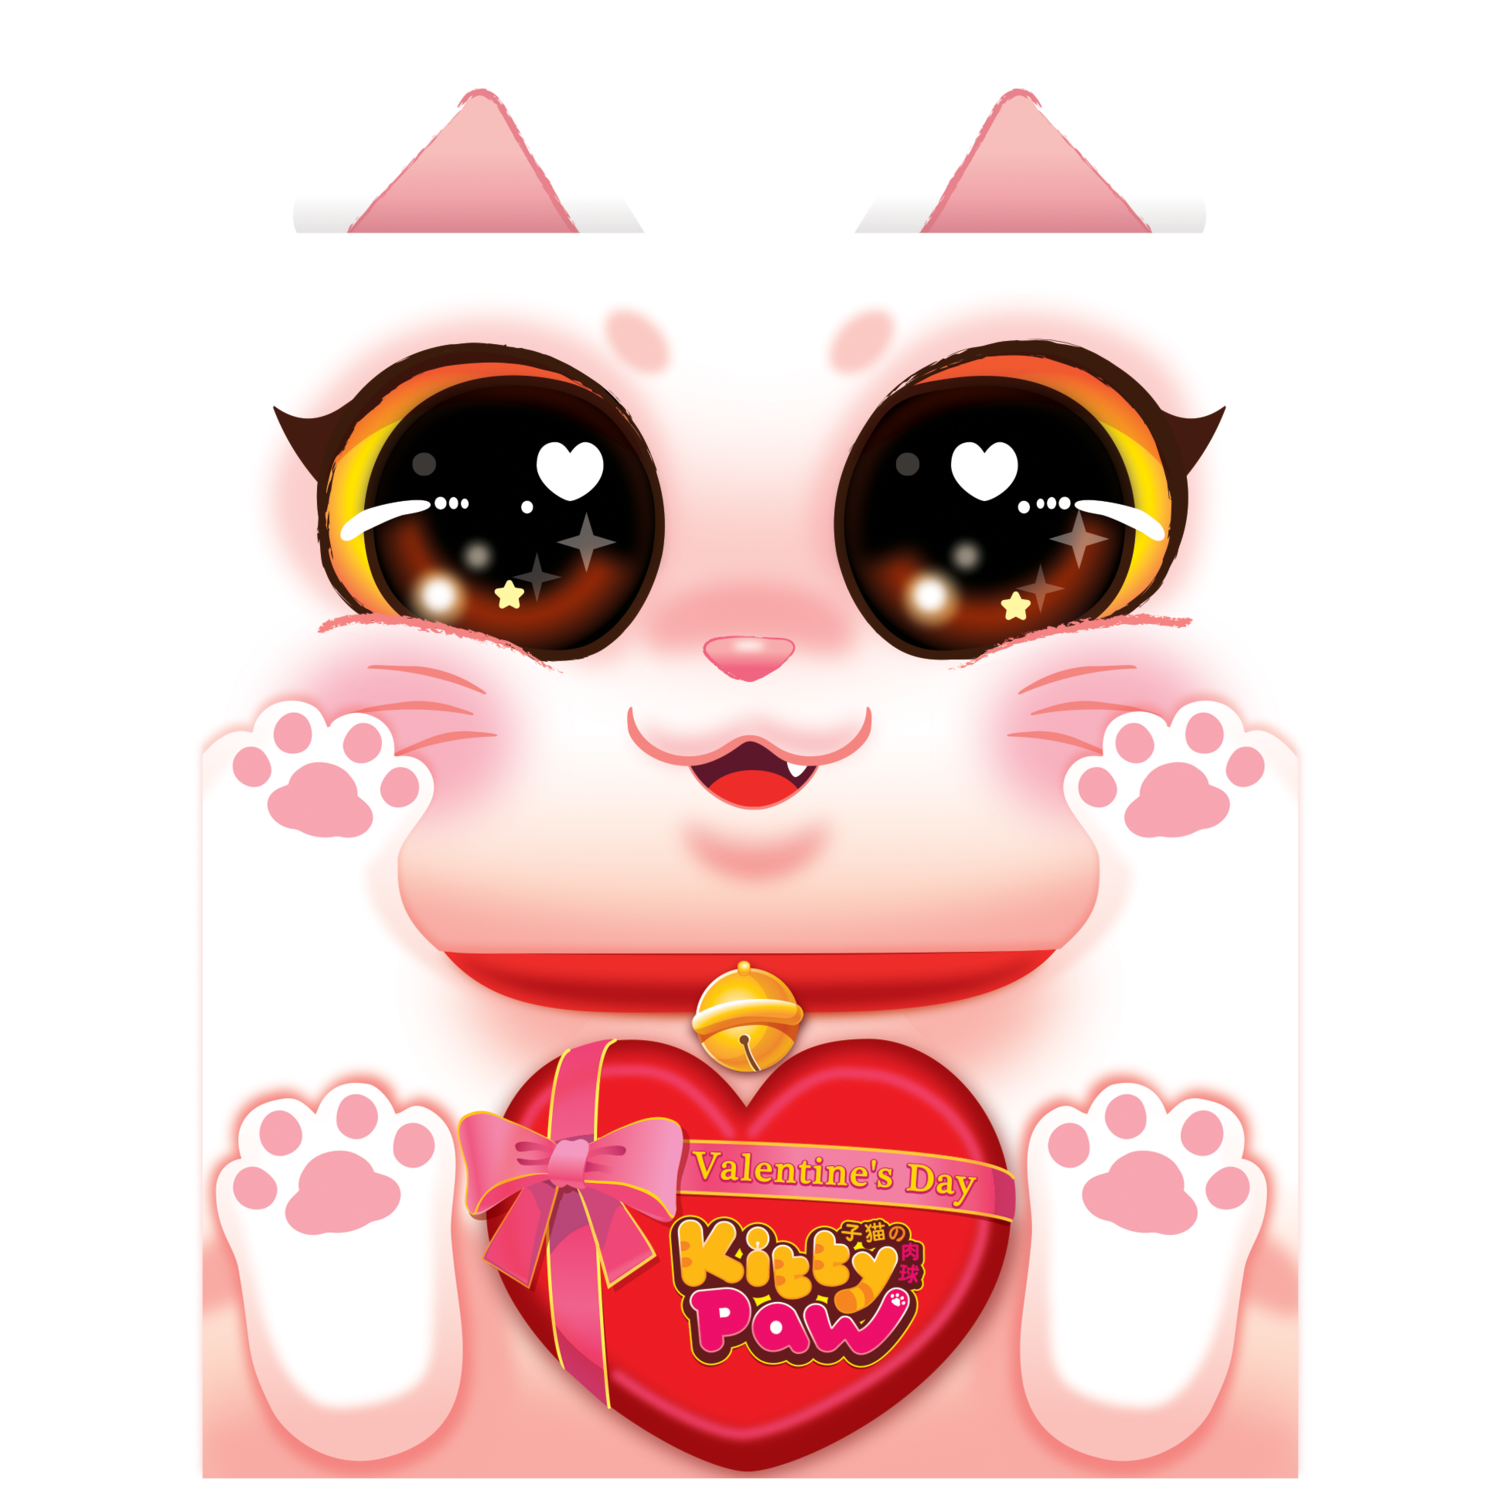 Kitty paw png. Valentine s day edition